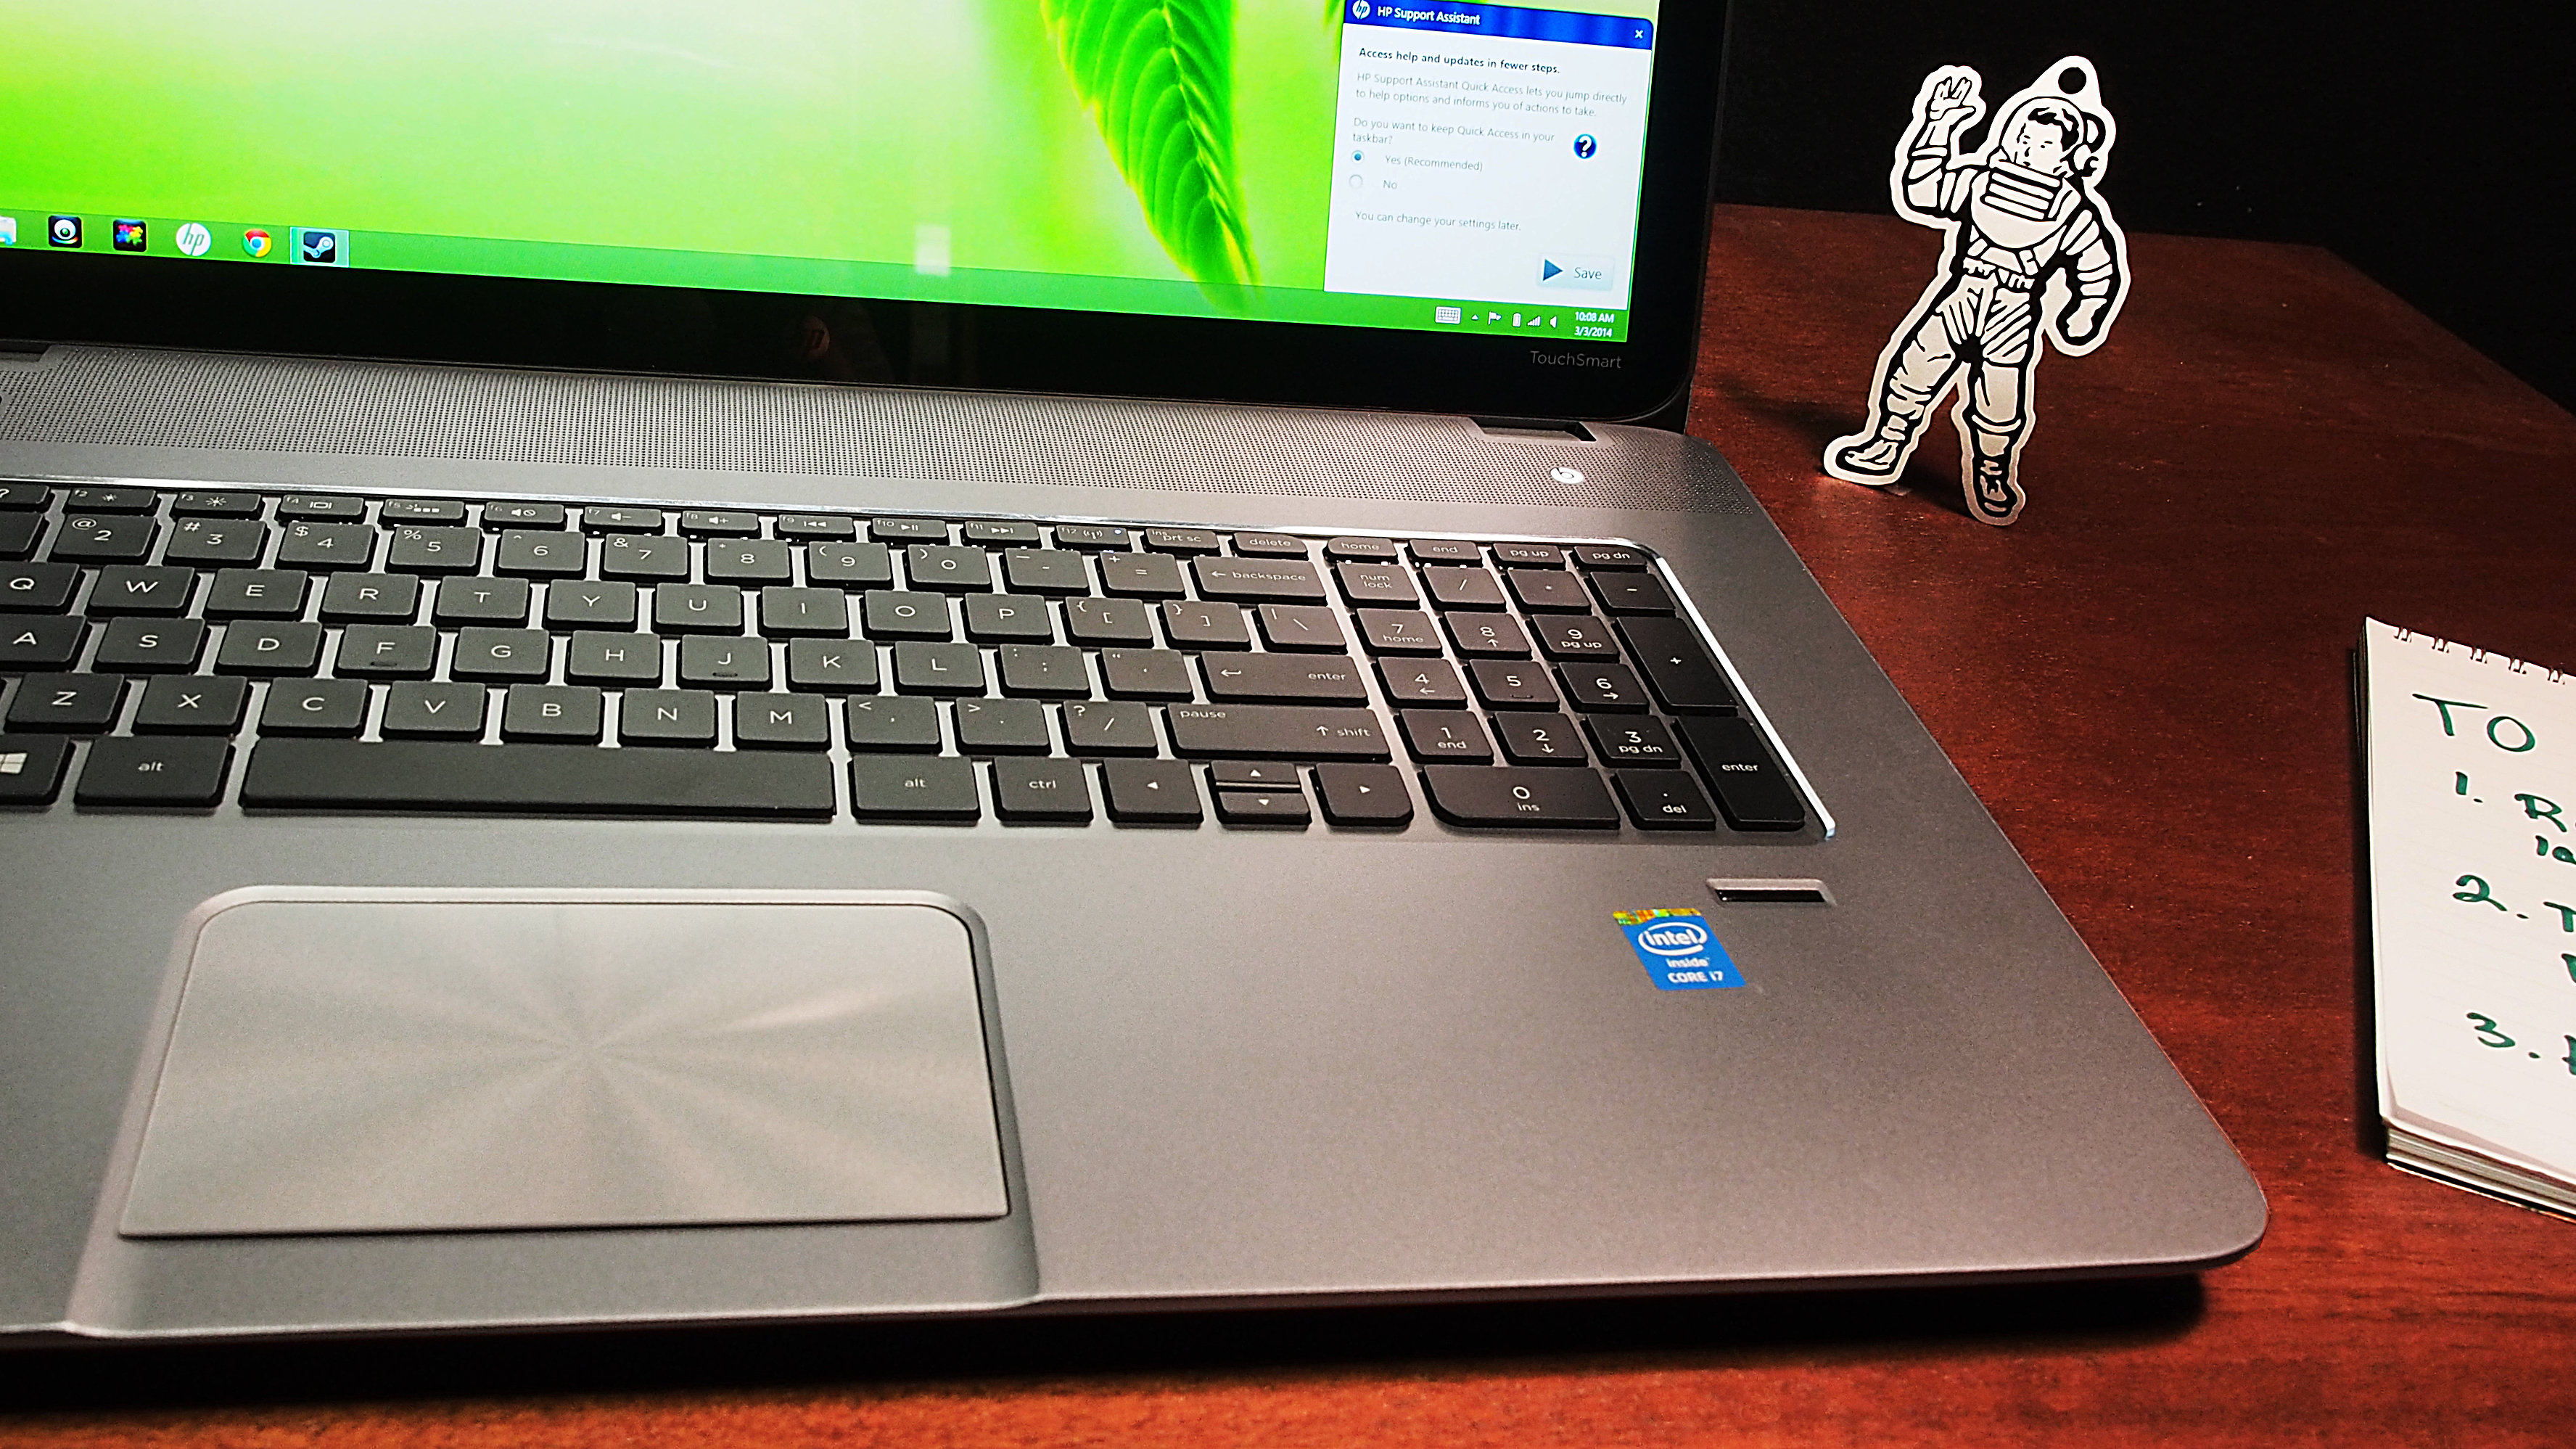 The HP Envy's touchpad isn't flush with the base, which means food crumbs can get under it.